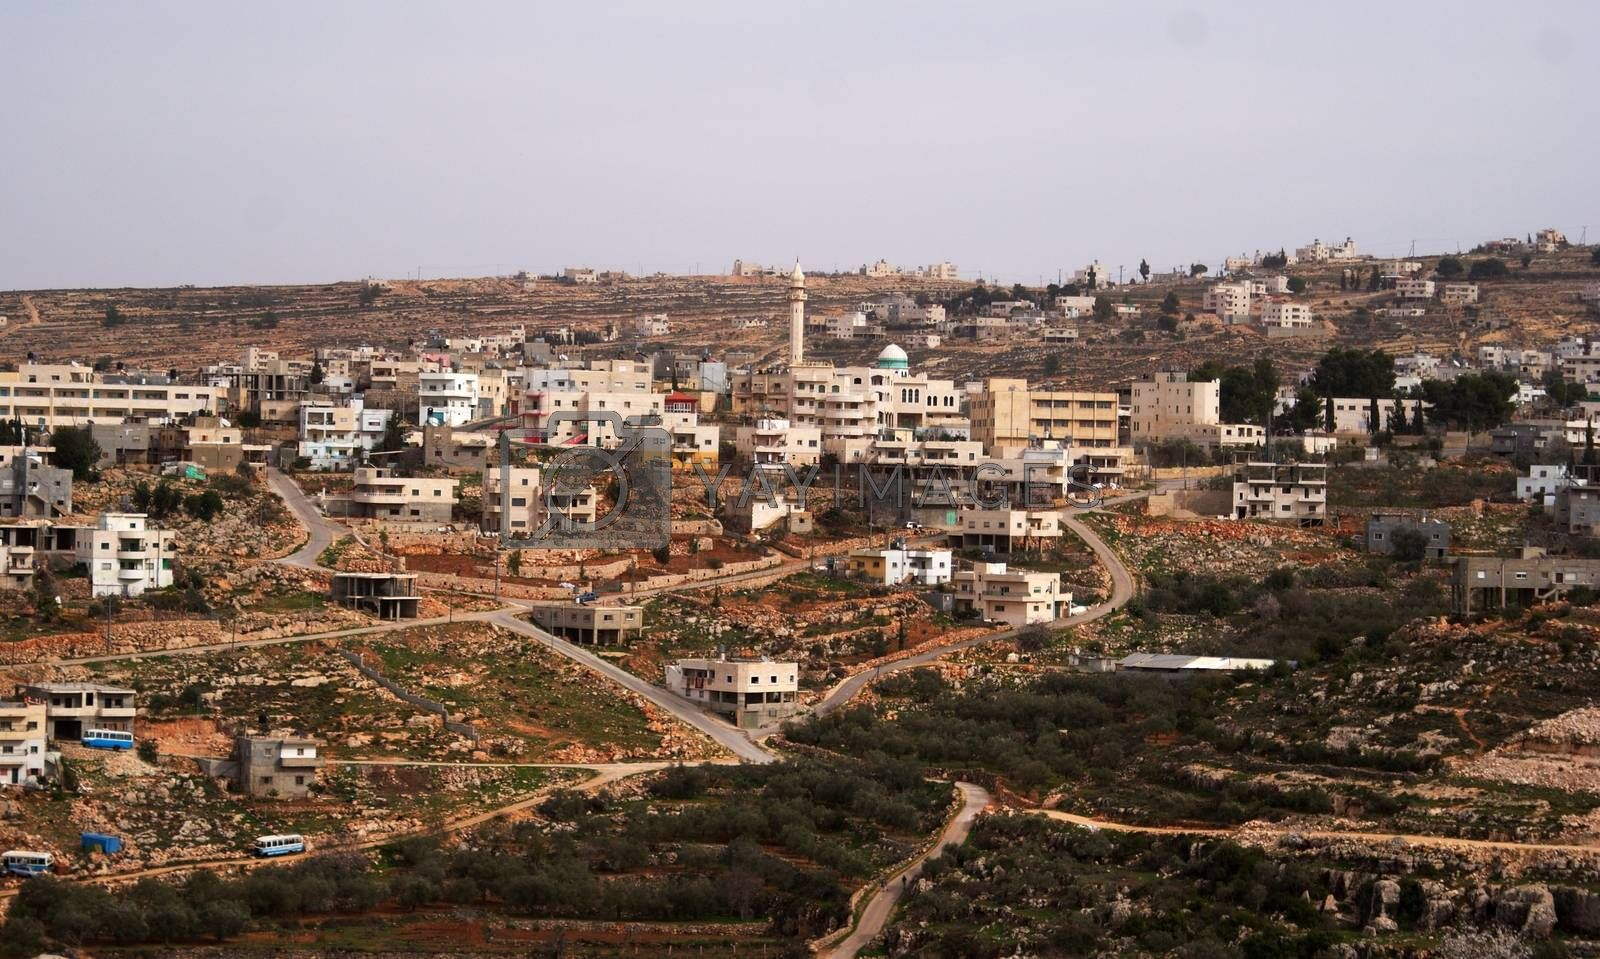 Palestine village by javax